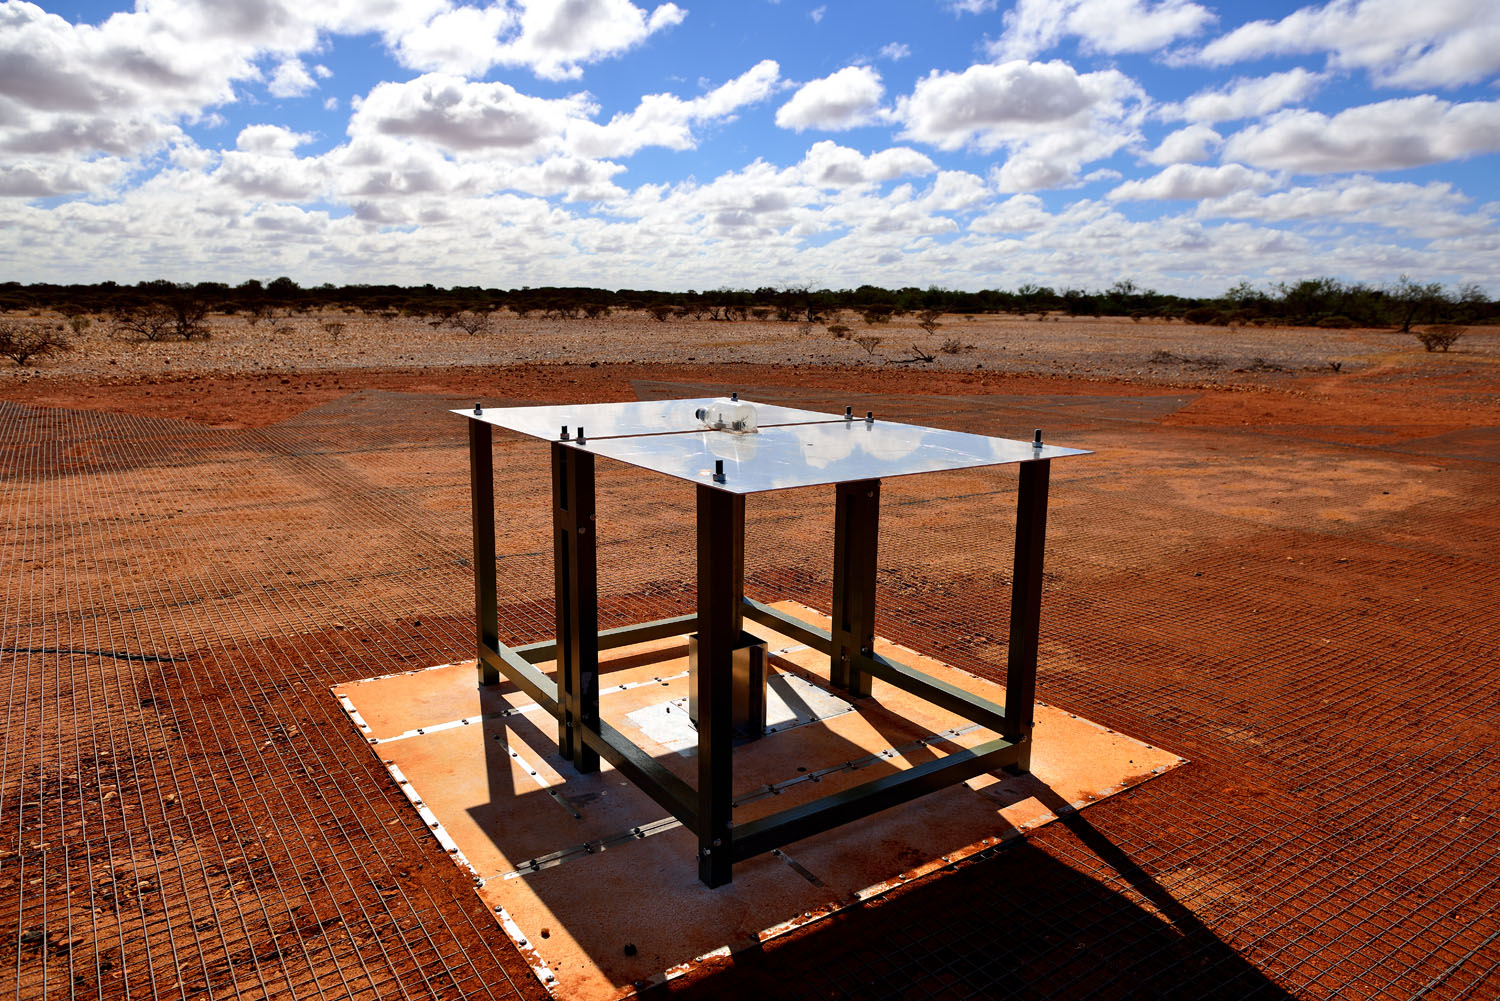 Small Rectangular metal radio telescope sitting on block of concrete surrounded by red dirt